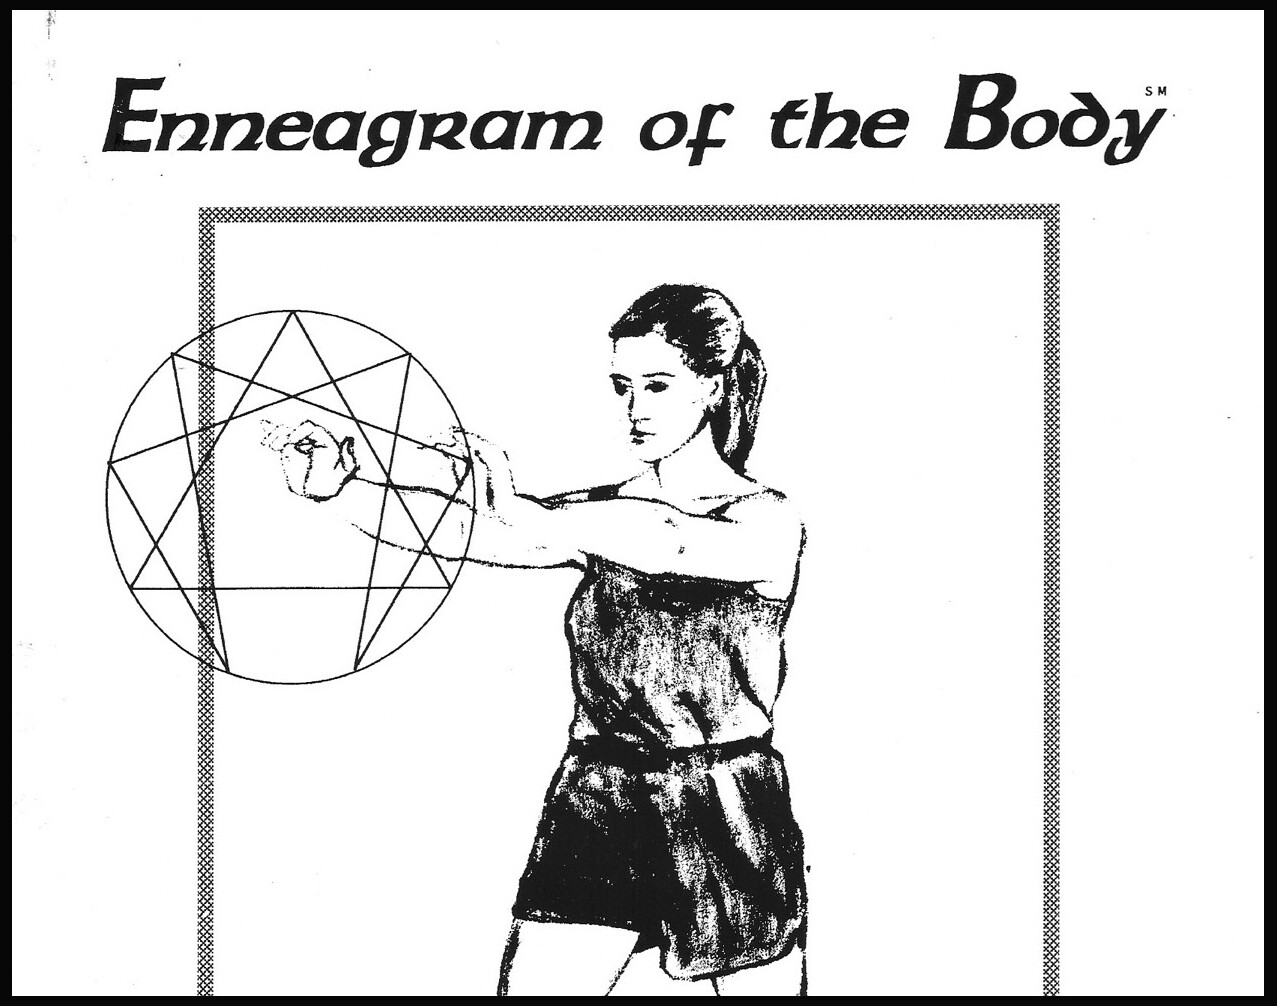 Enneagram of the Body Booklet